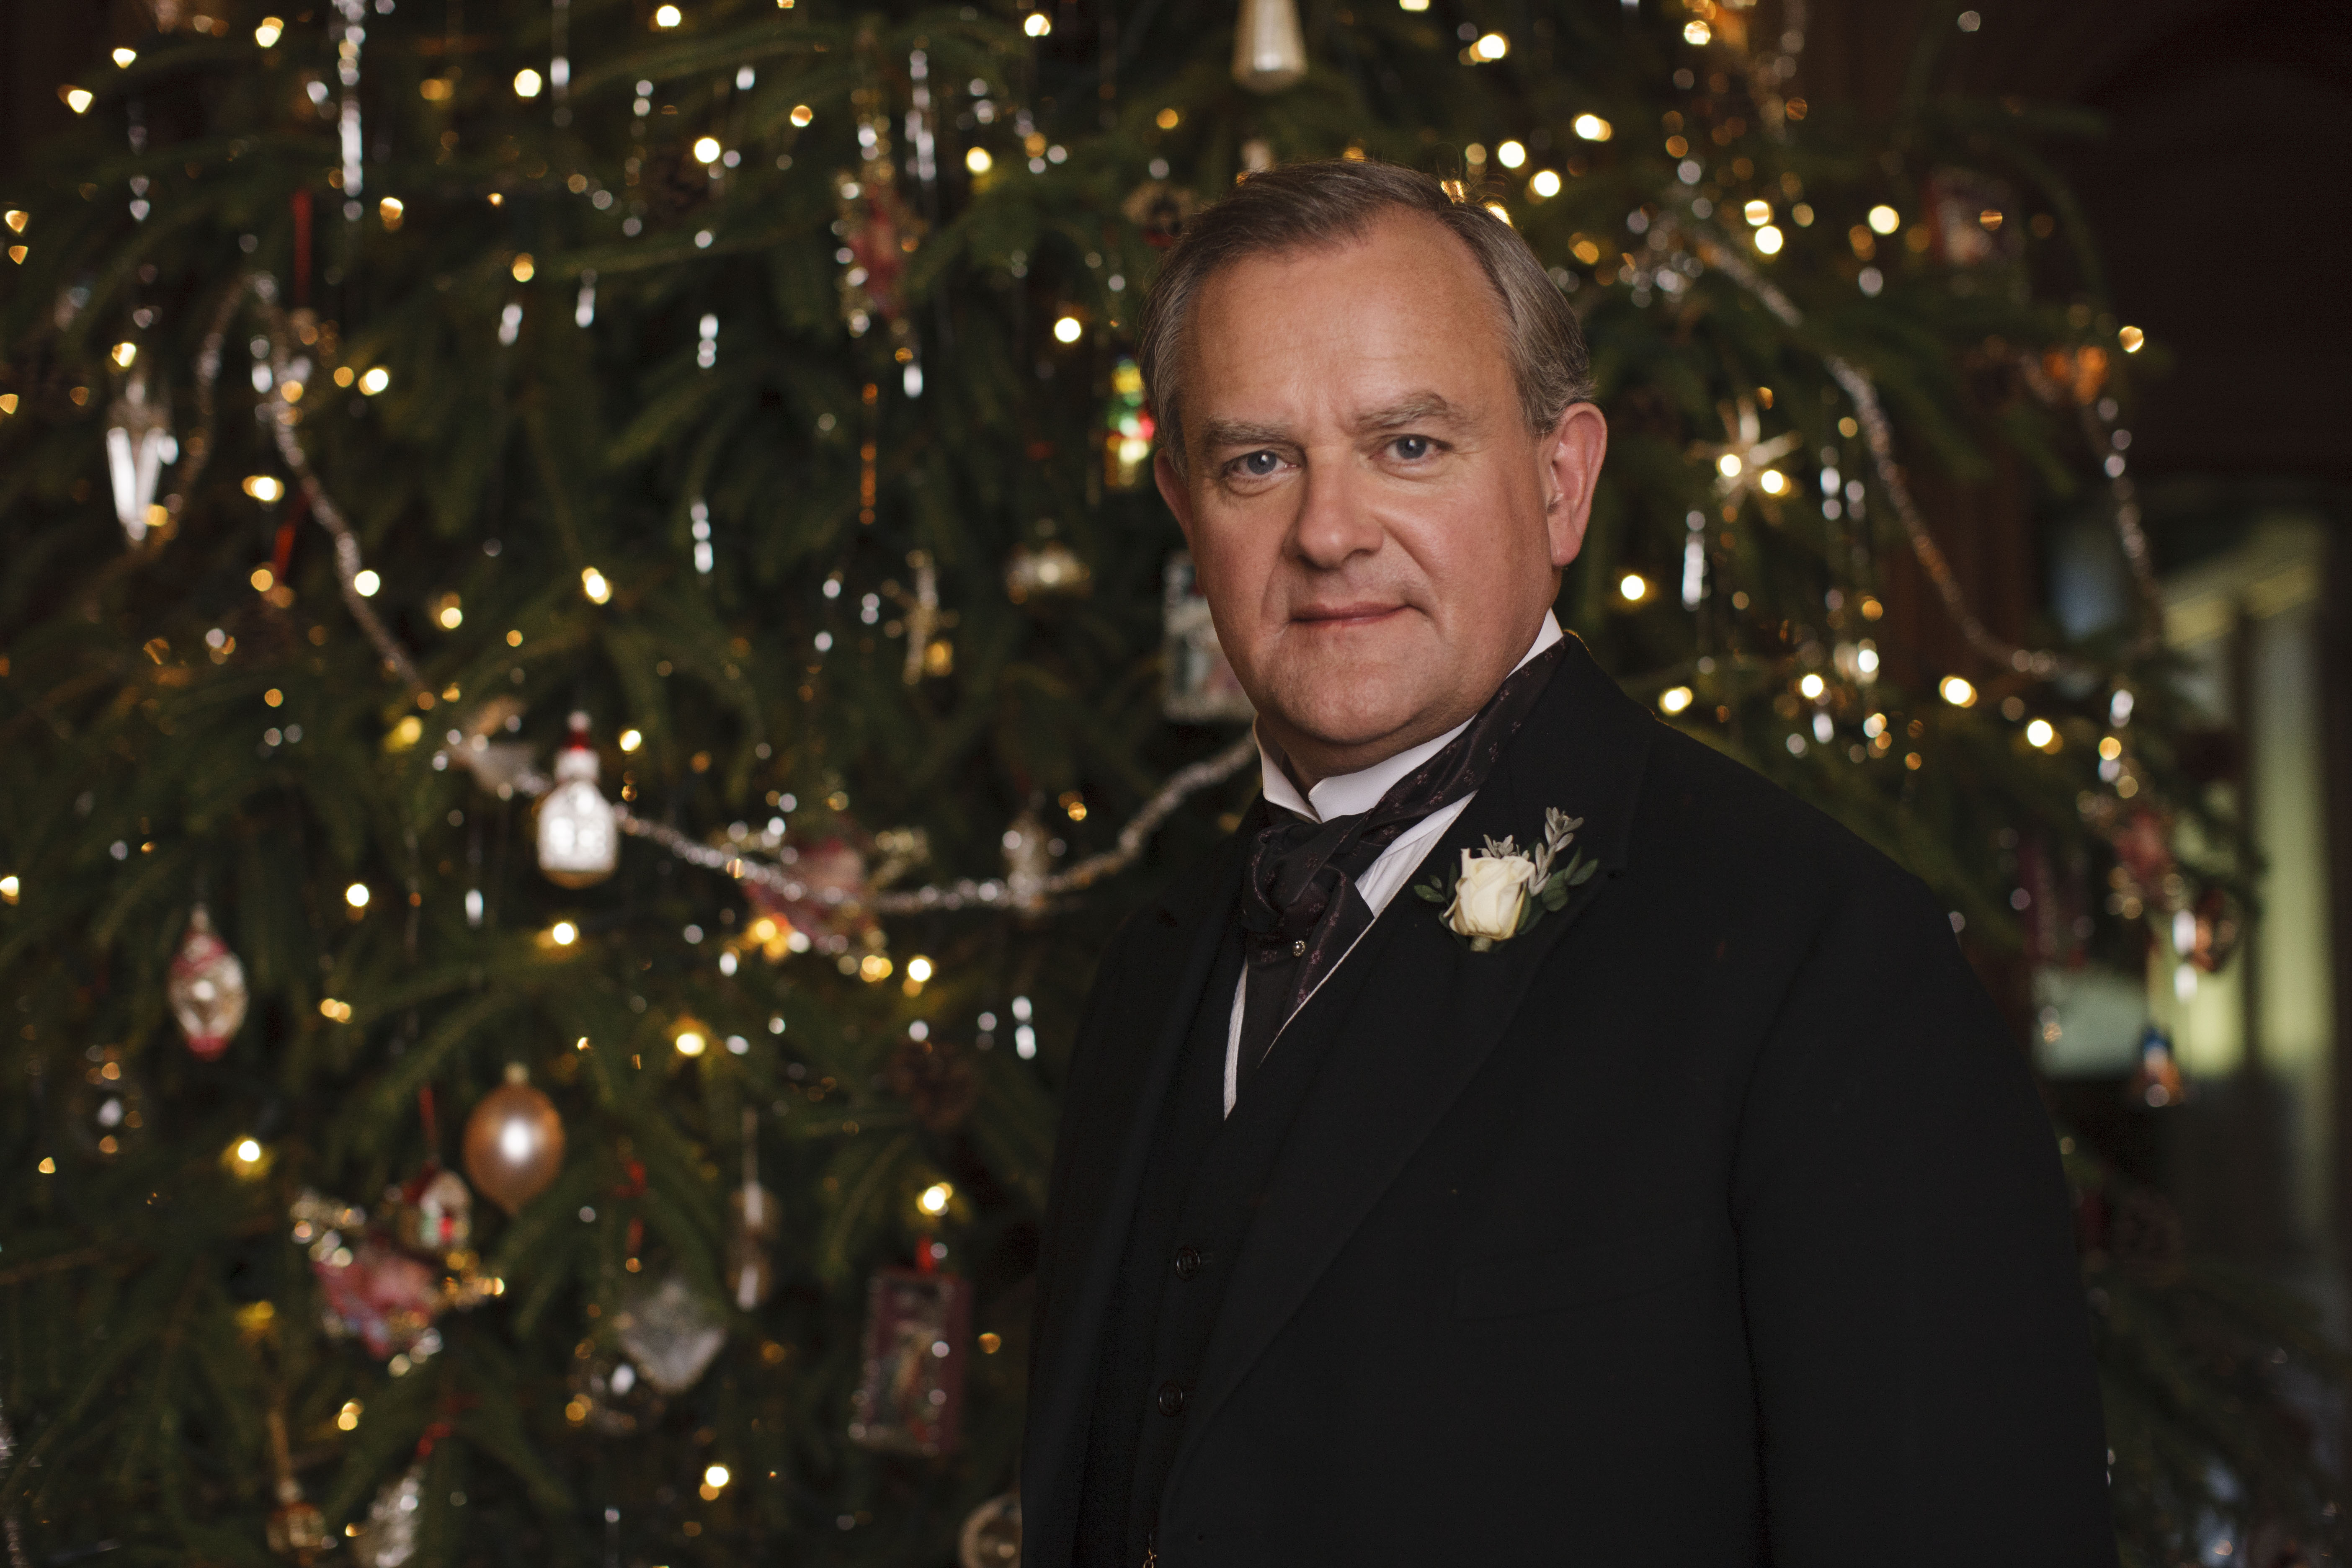 Downton Abbey - Lord Grantham